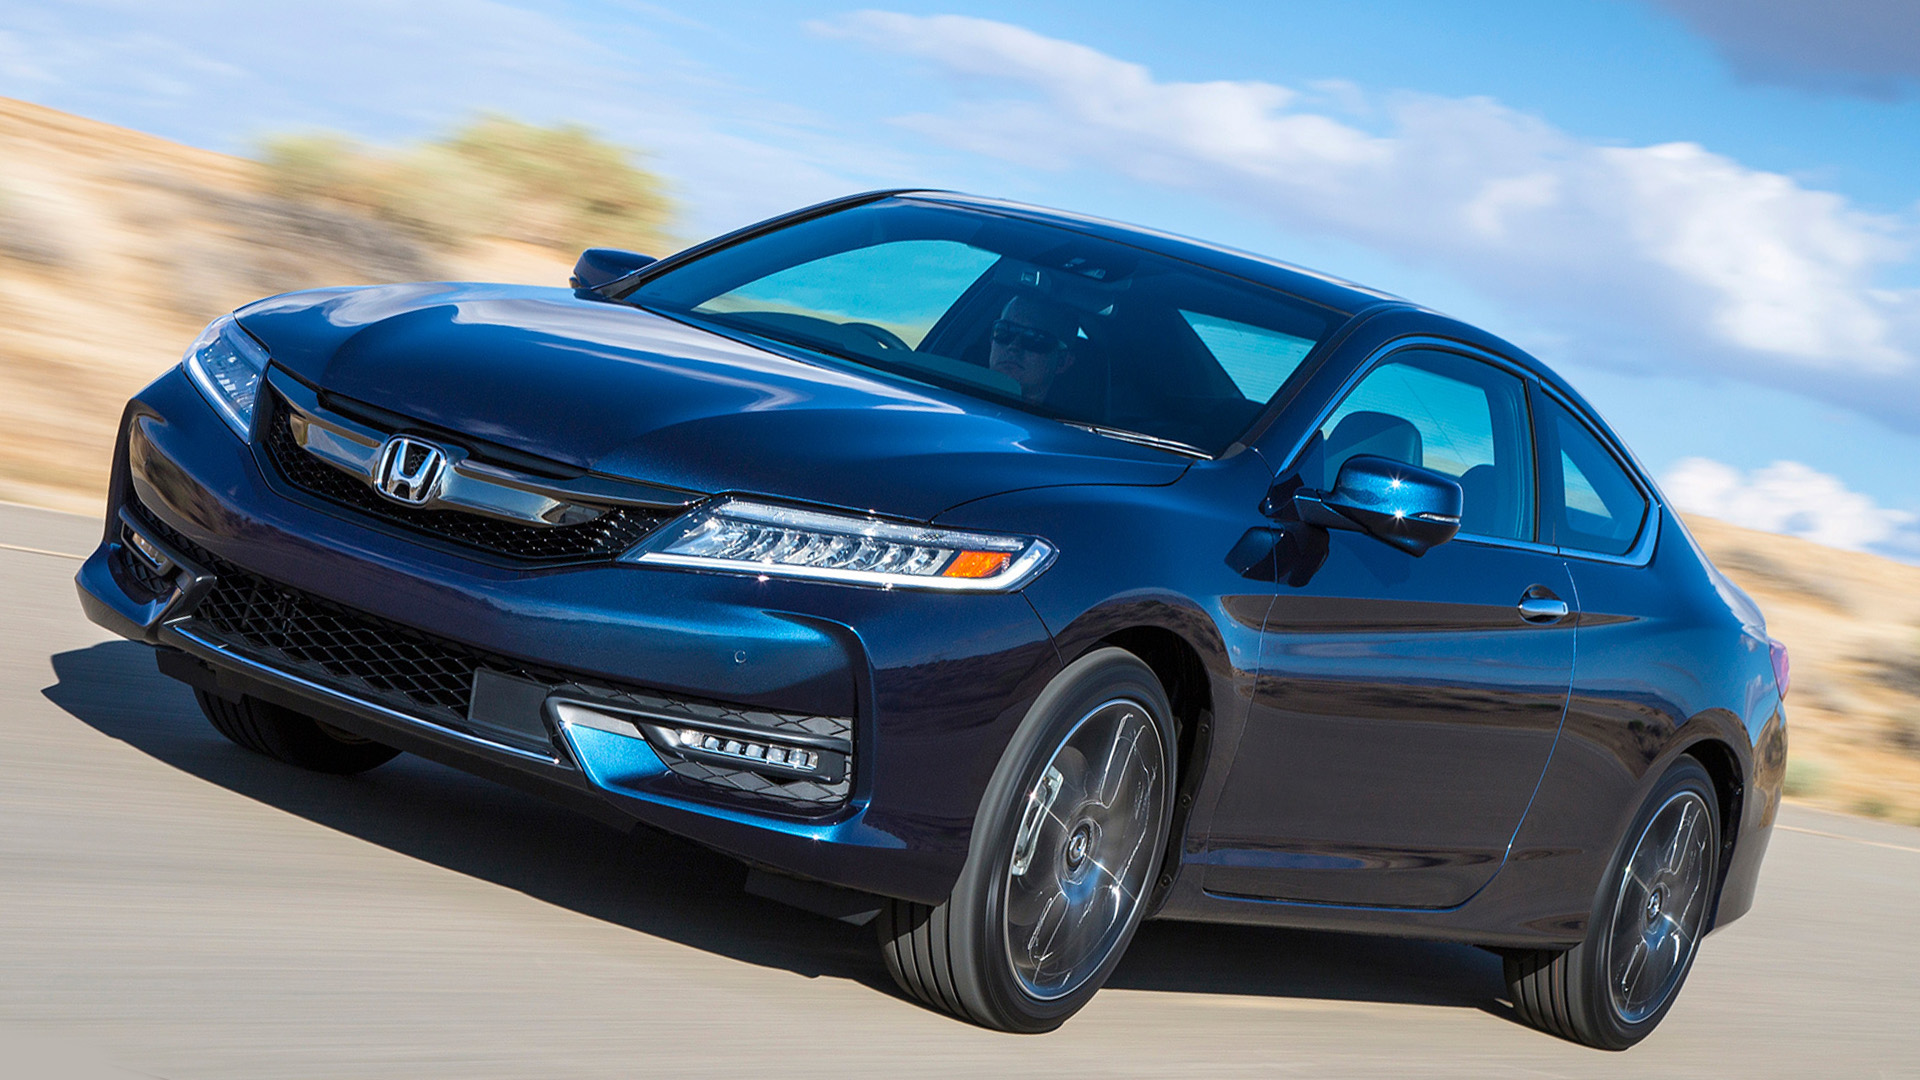 New 2016 Honda Accord Turbo Concept HD